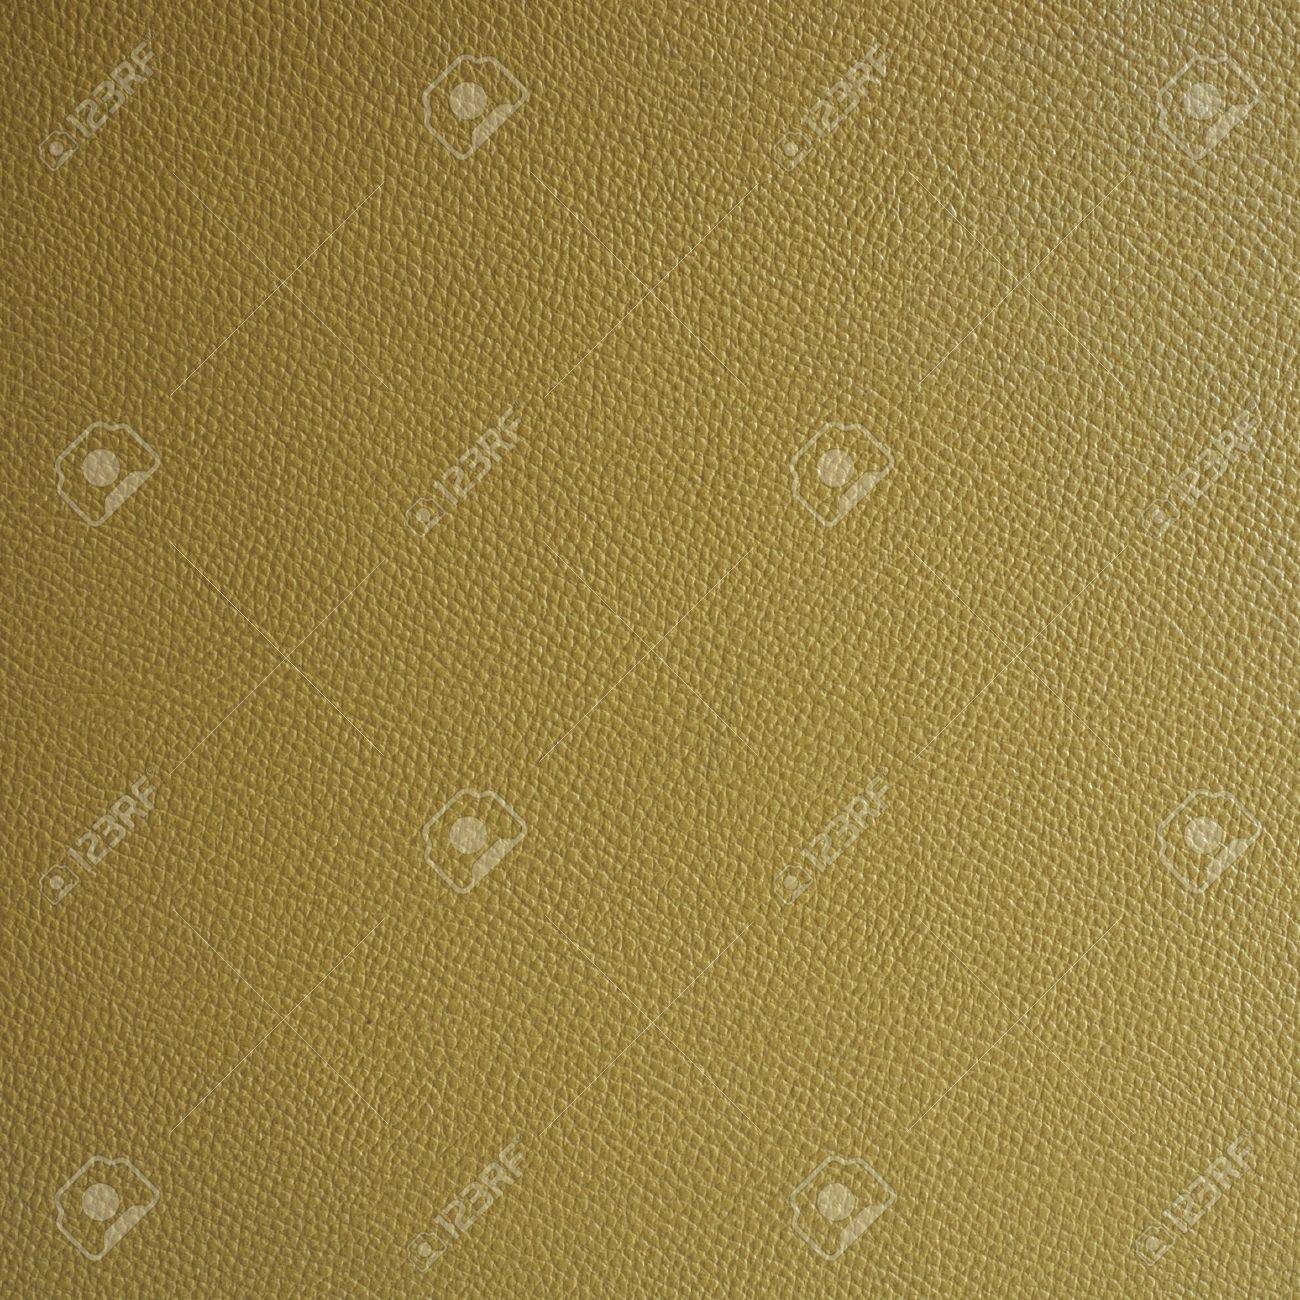 gold leather texture Stock Photo - 10921081